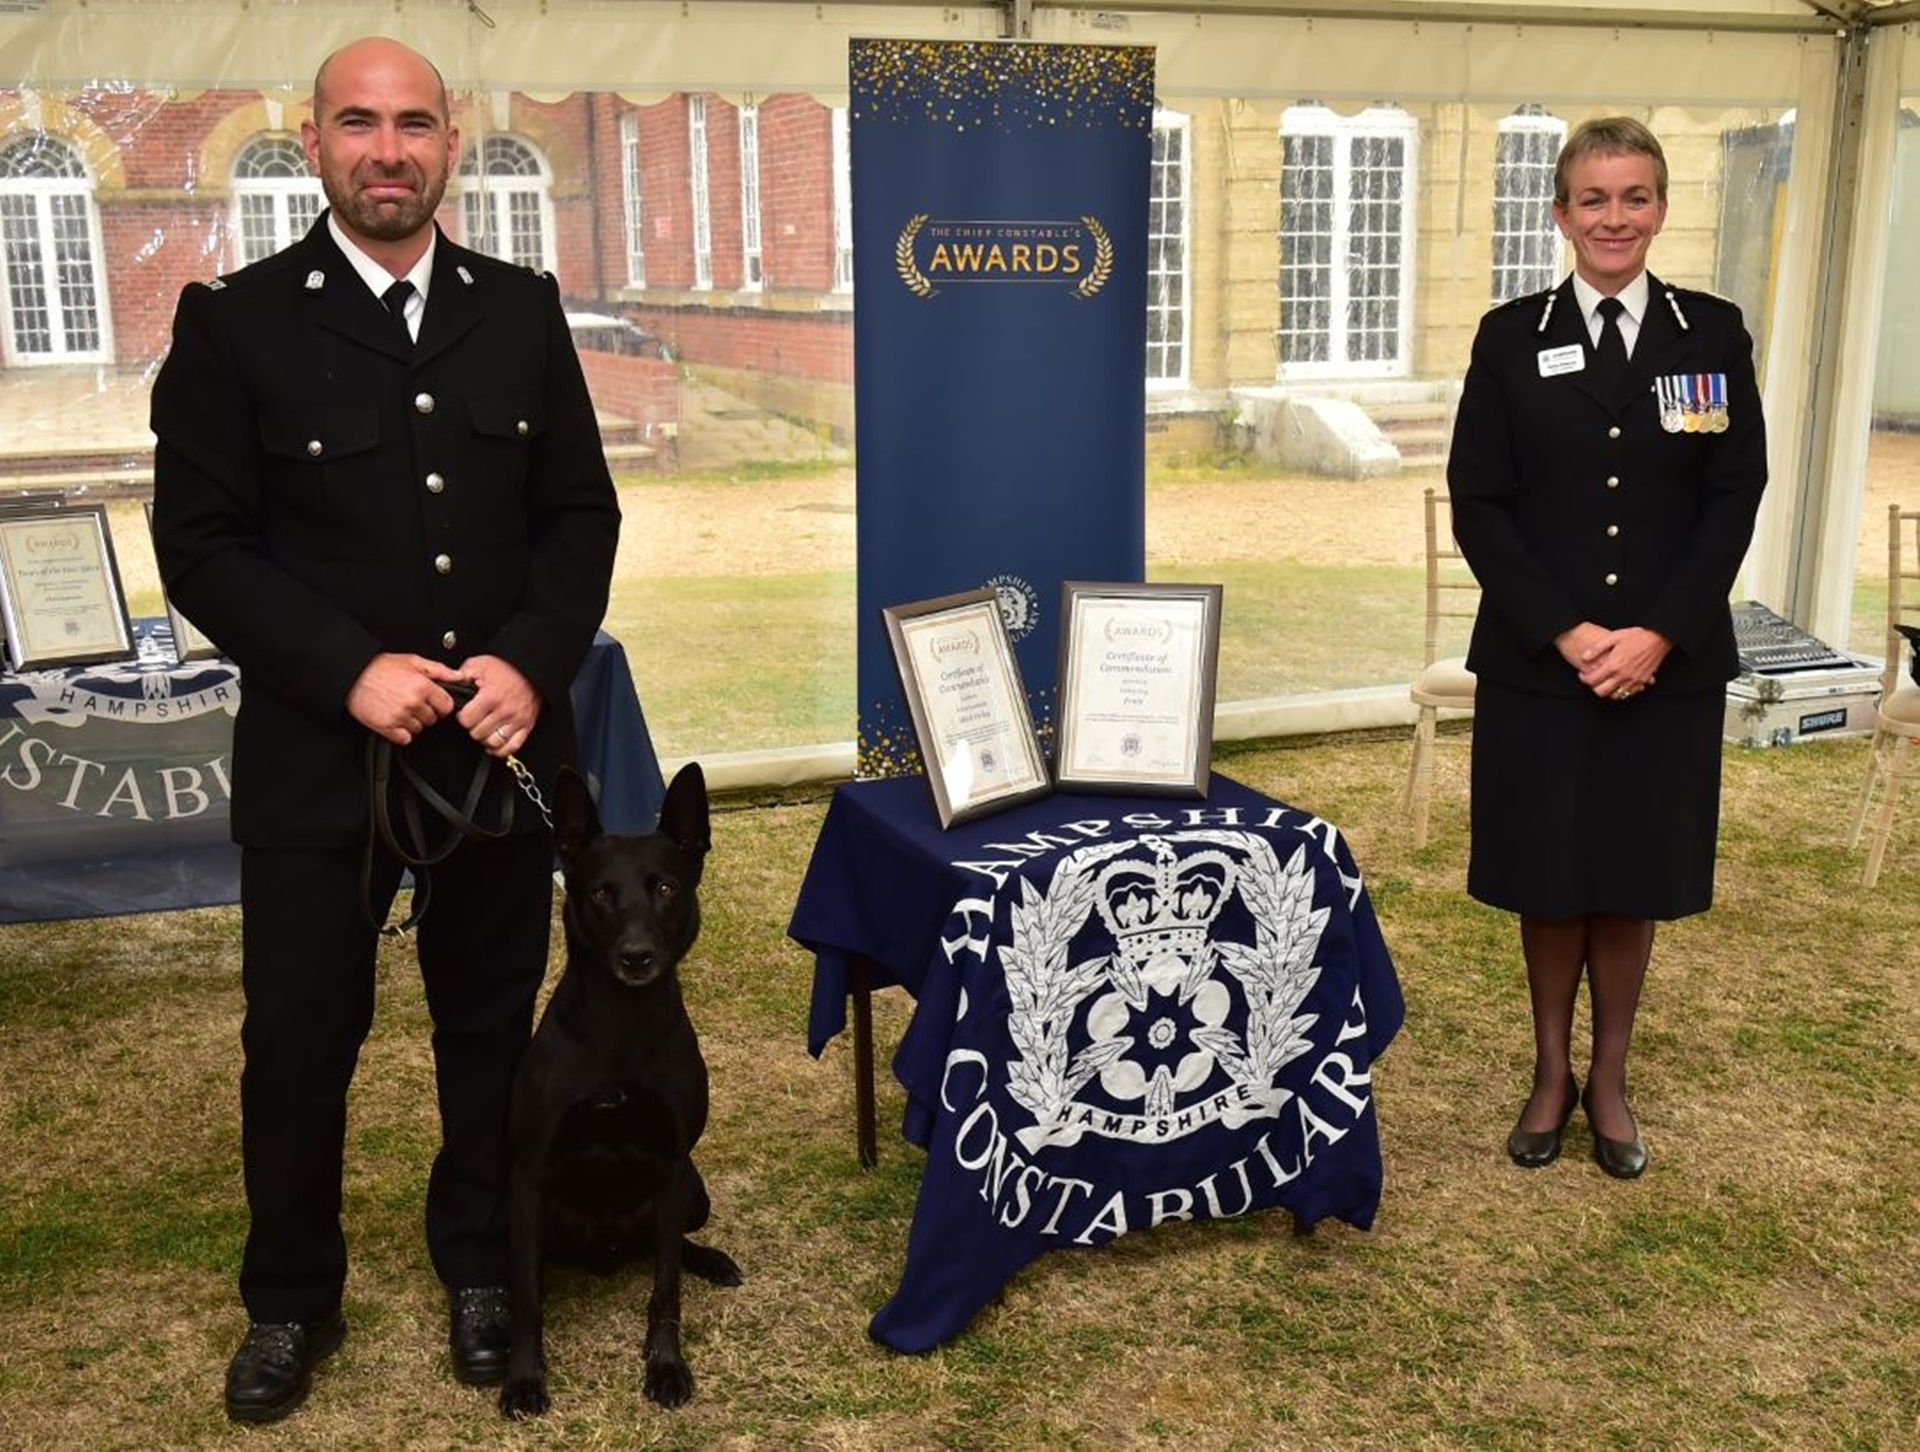 Mark with dog Ernie and Chief Constable